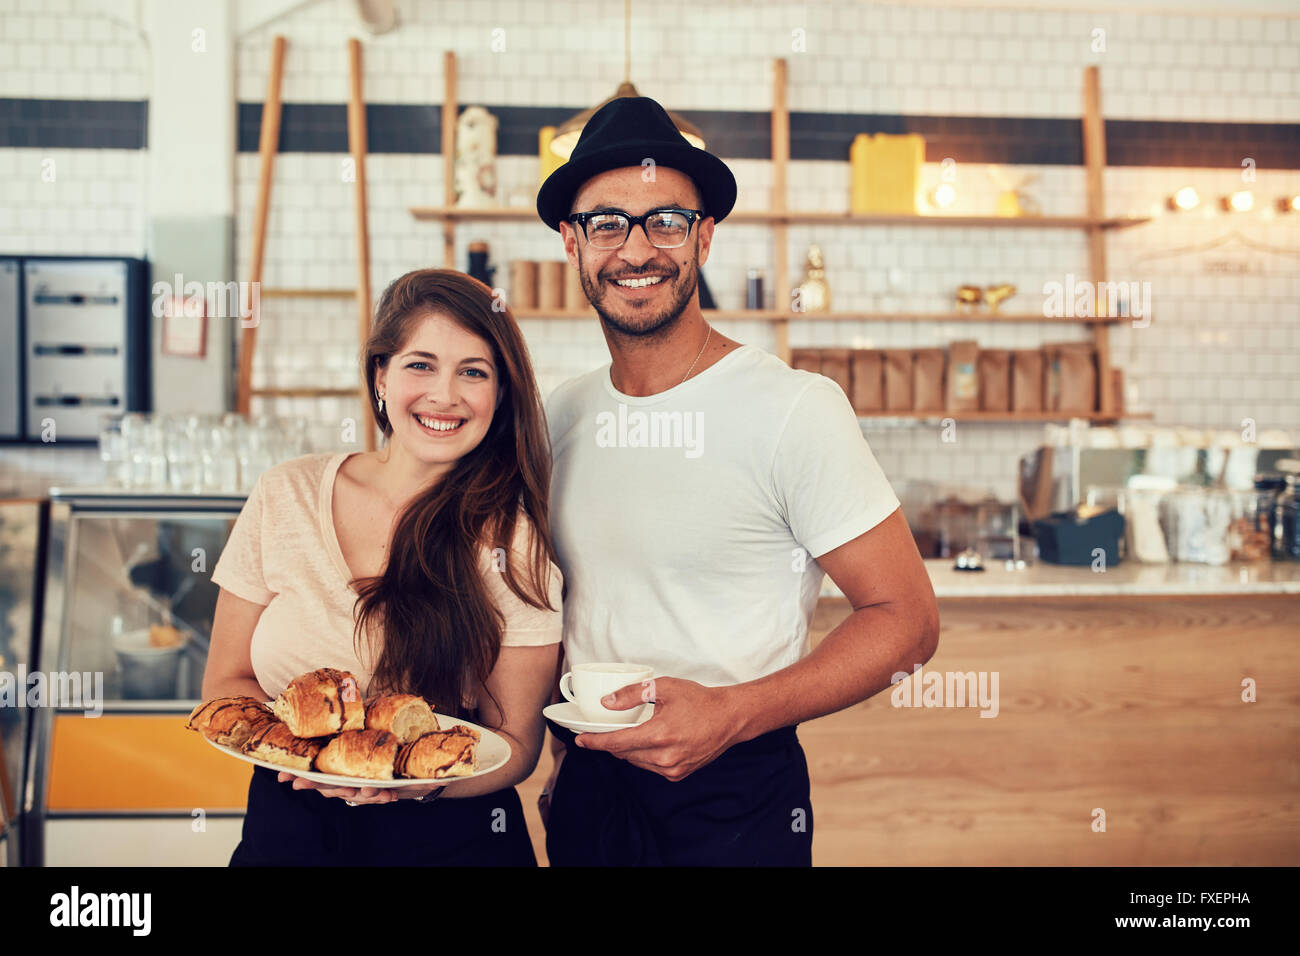 Portrait of happy young man and woman with food and cafe at coffee shop. Couple having food in a restaurant. Stock Photo